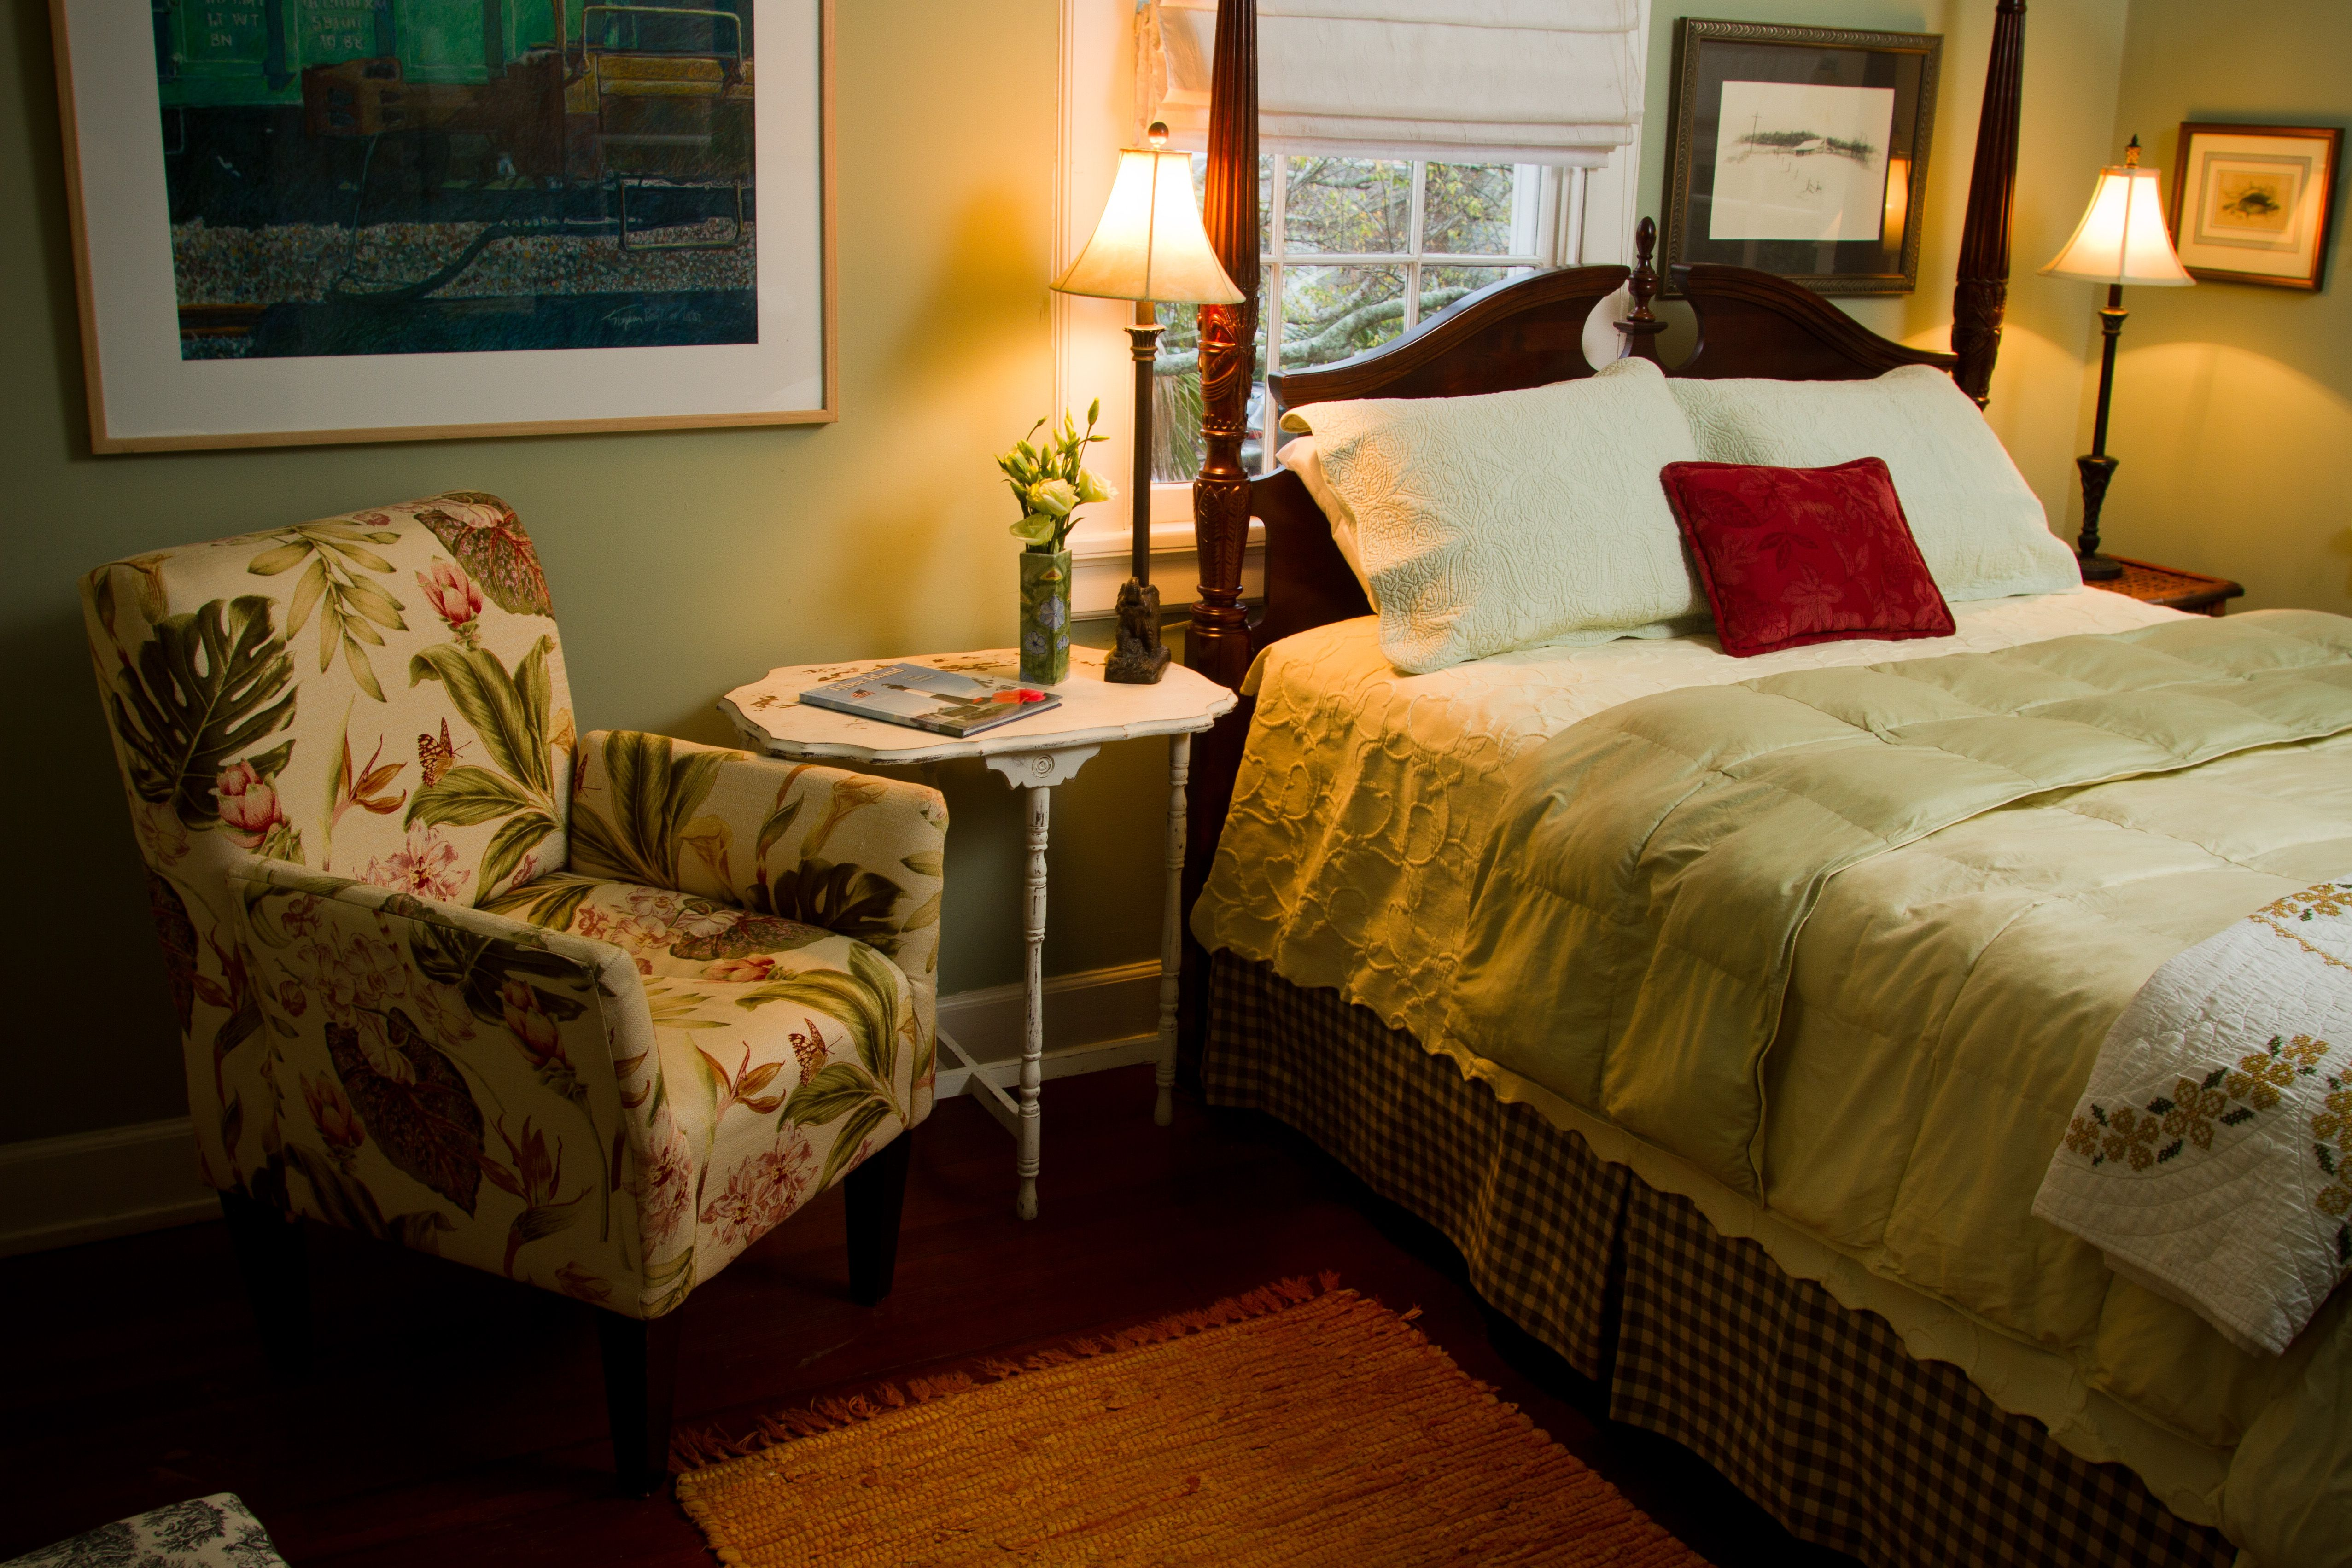 Tybee bed and breakfast guest room. Photo (c) 2010